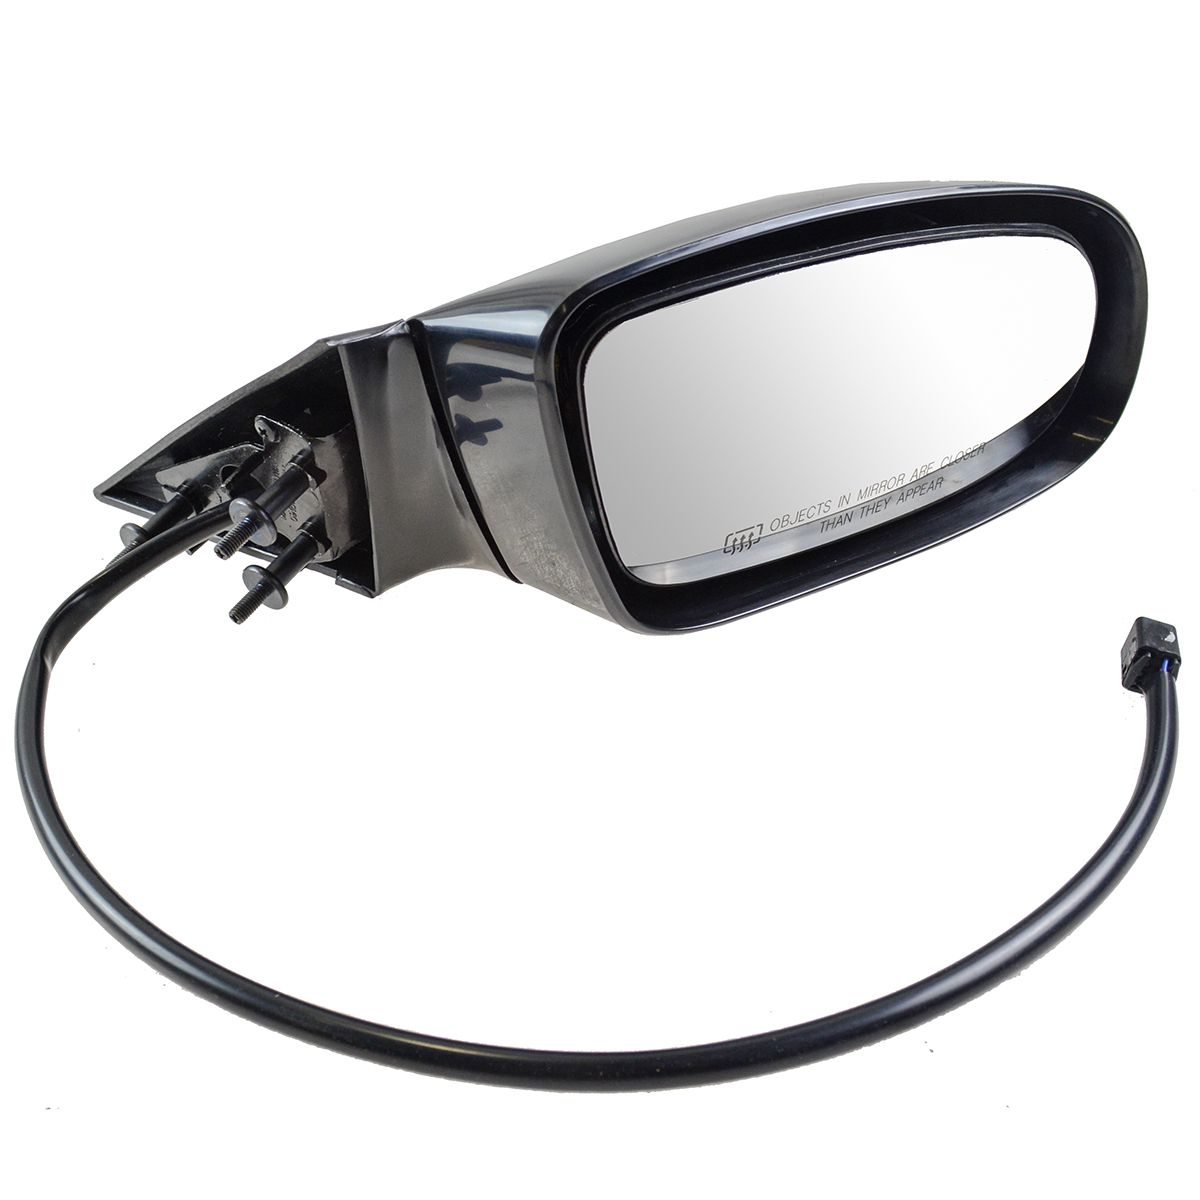 Power Heated Folding Mirror LH Left Driver Side for 95-96 Impala Roadmaster